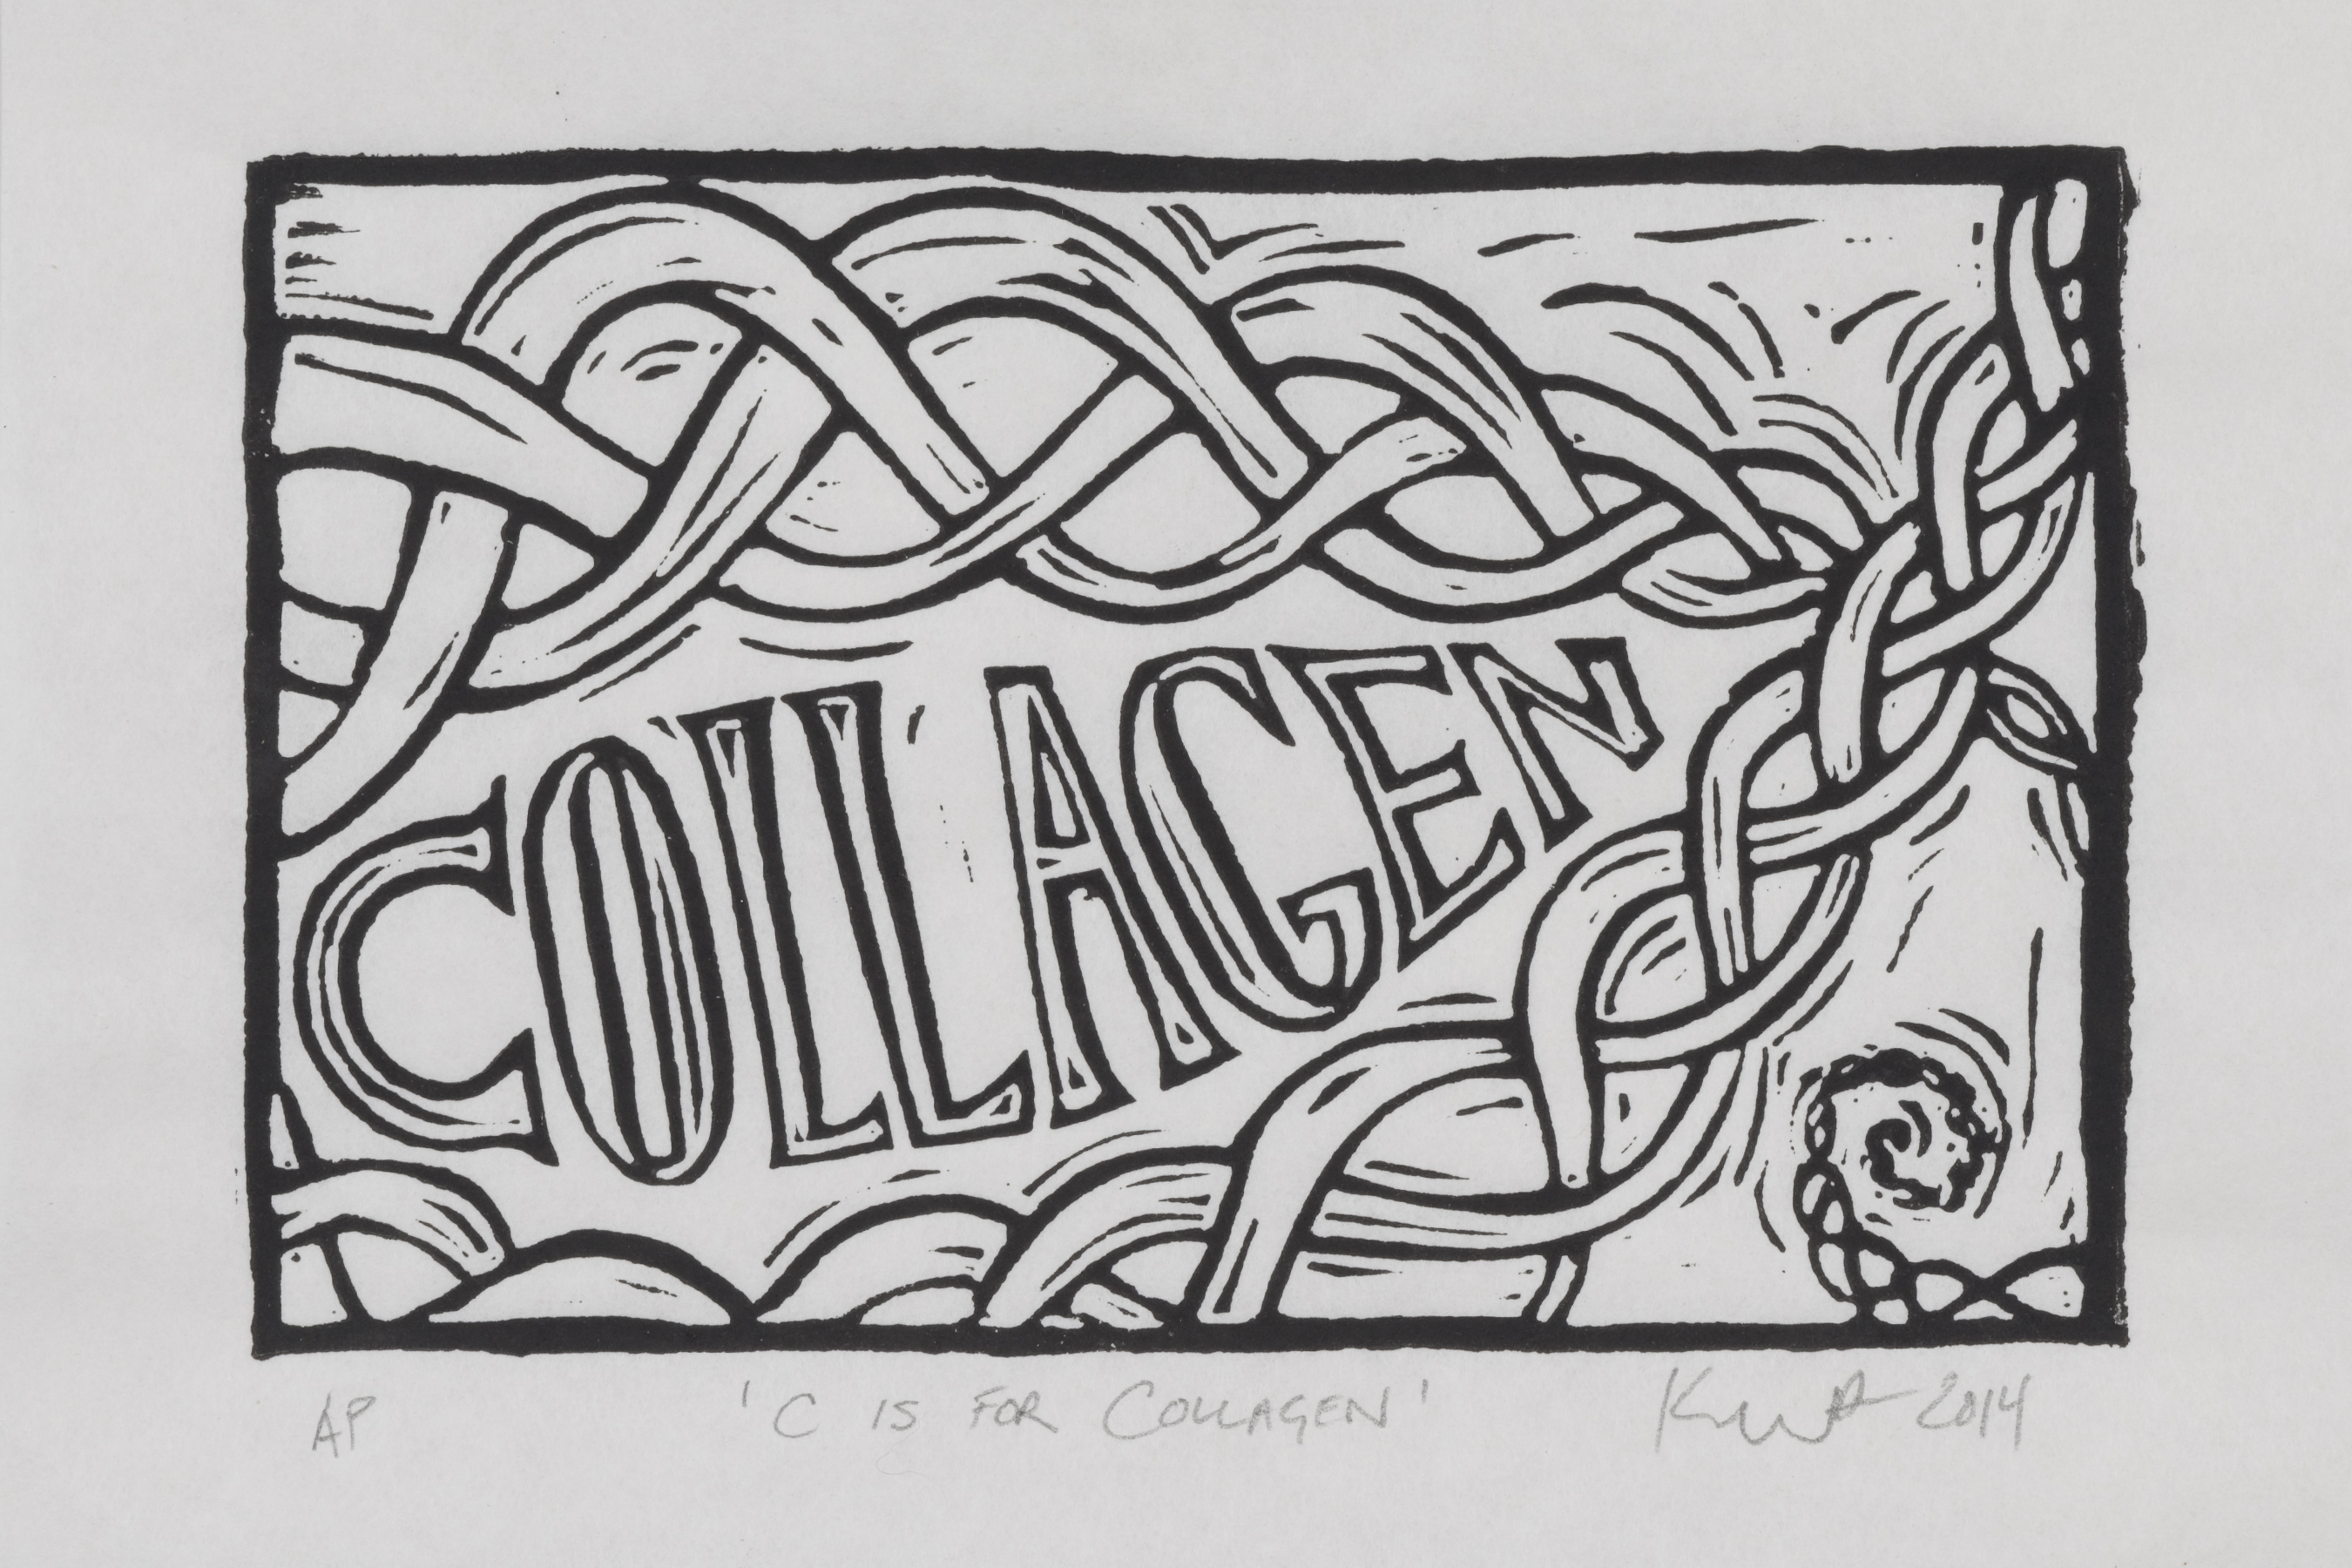 C is for Collagen